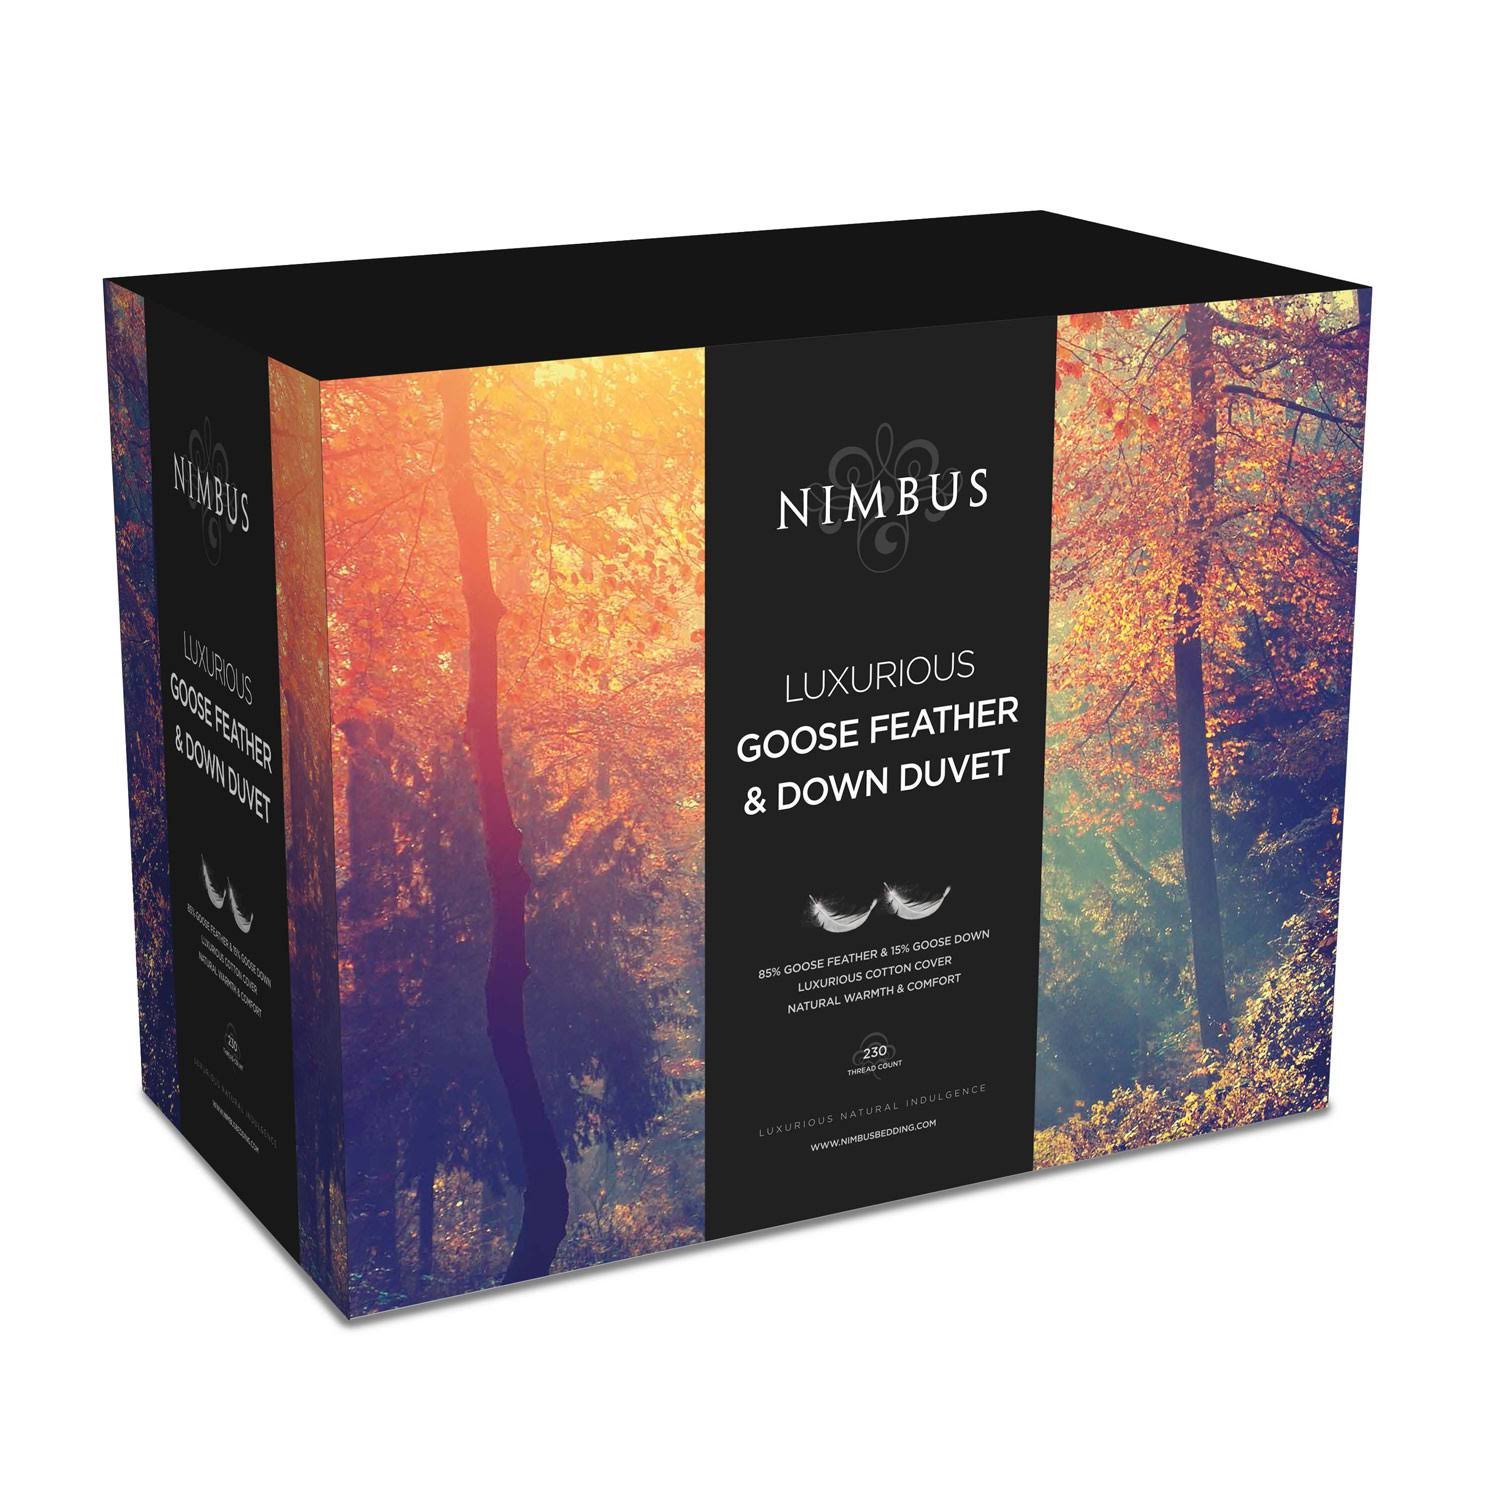 Nimbus - Goose Feather & Down Duvet - 10.5 Tog - King